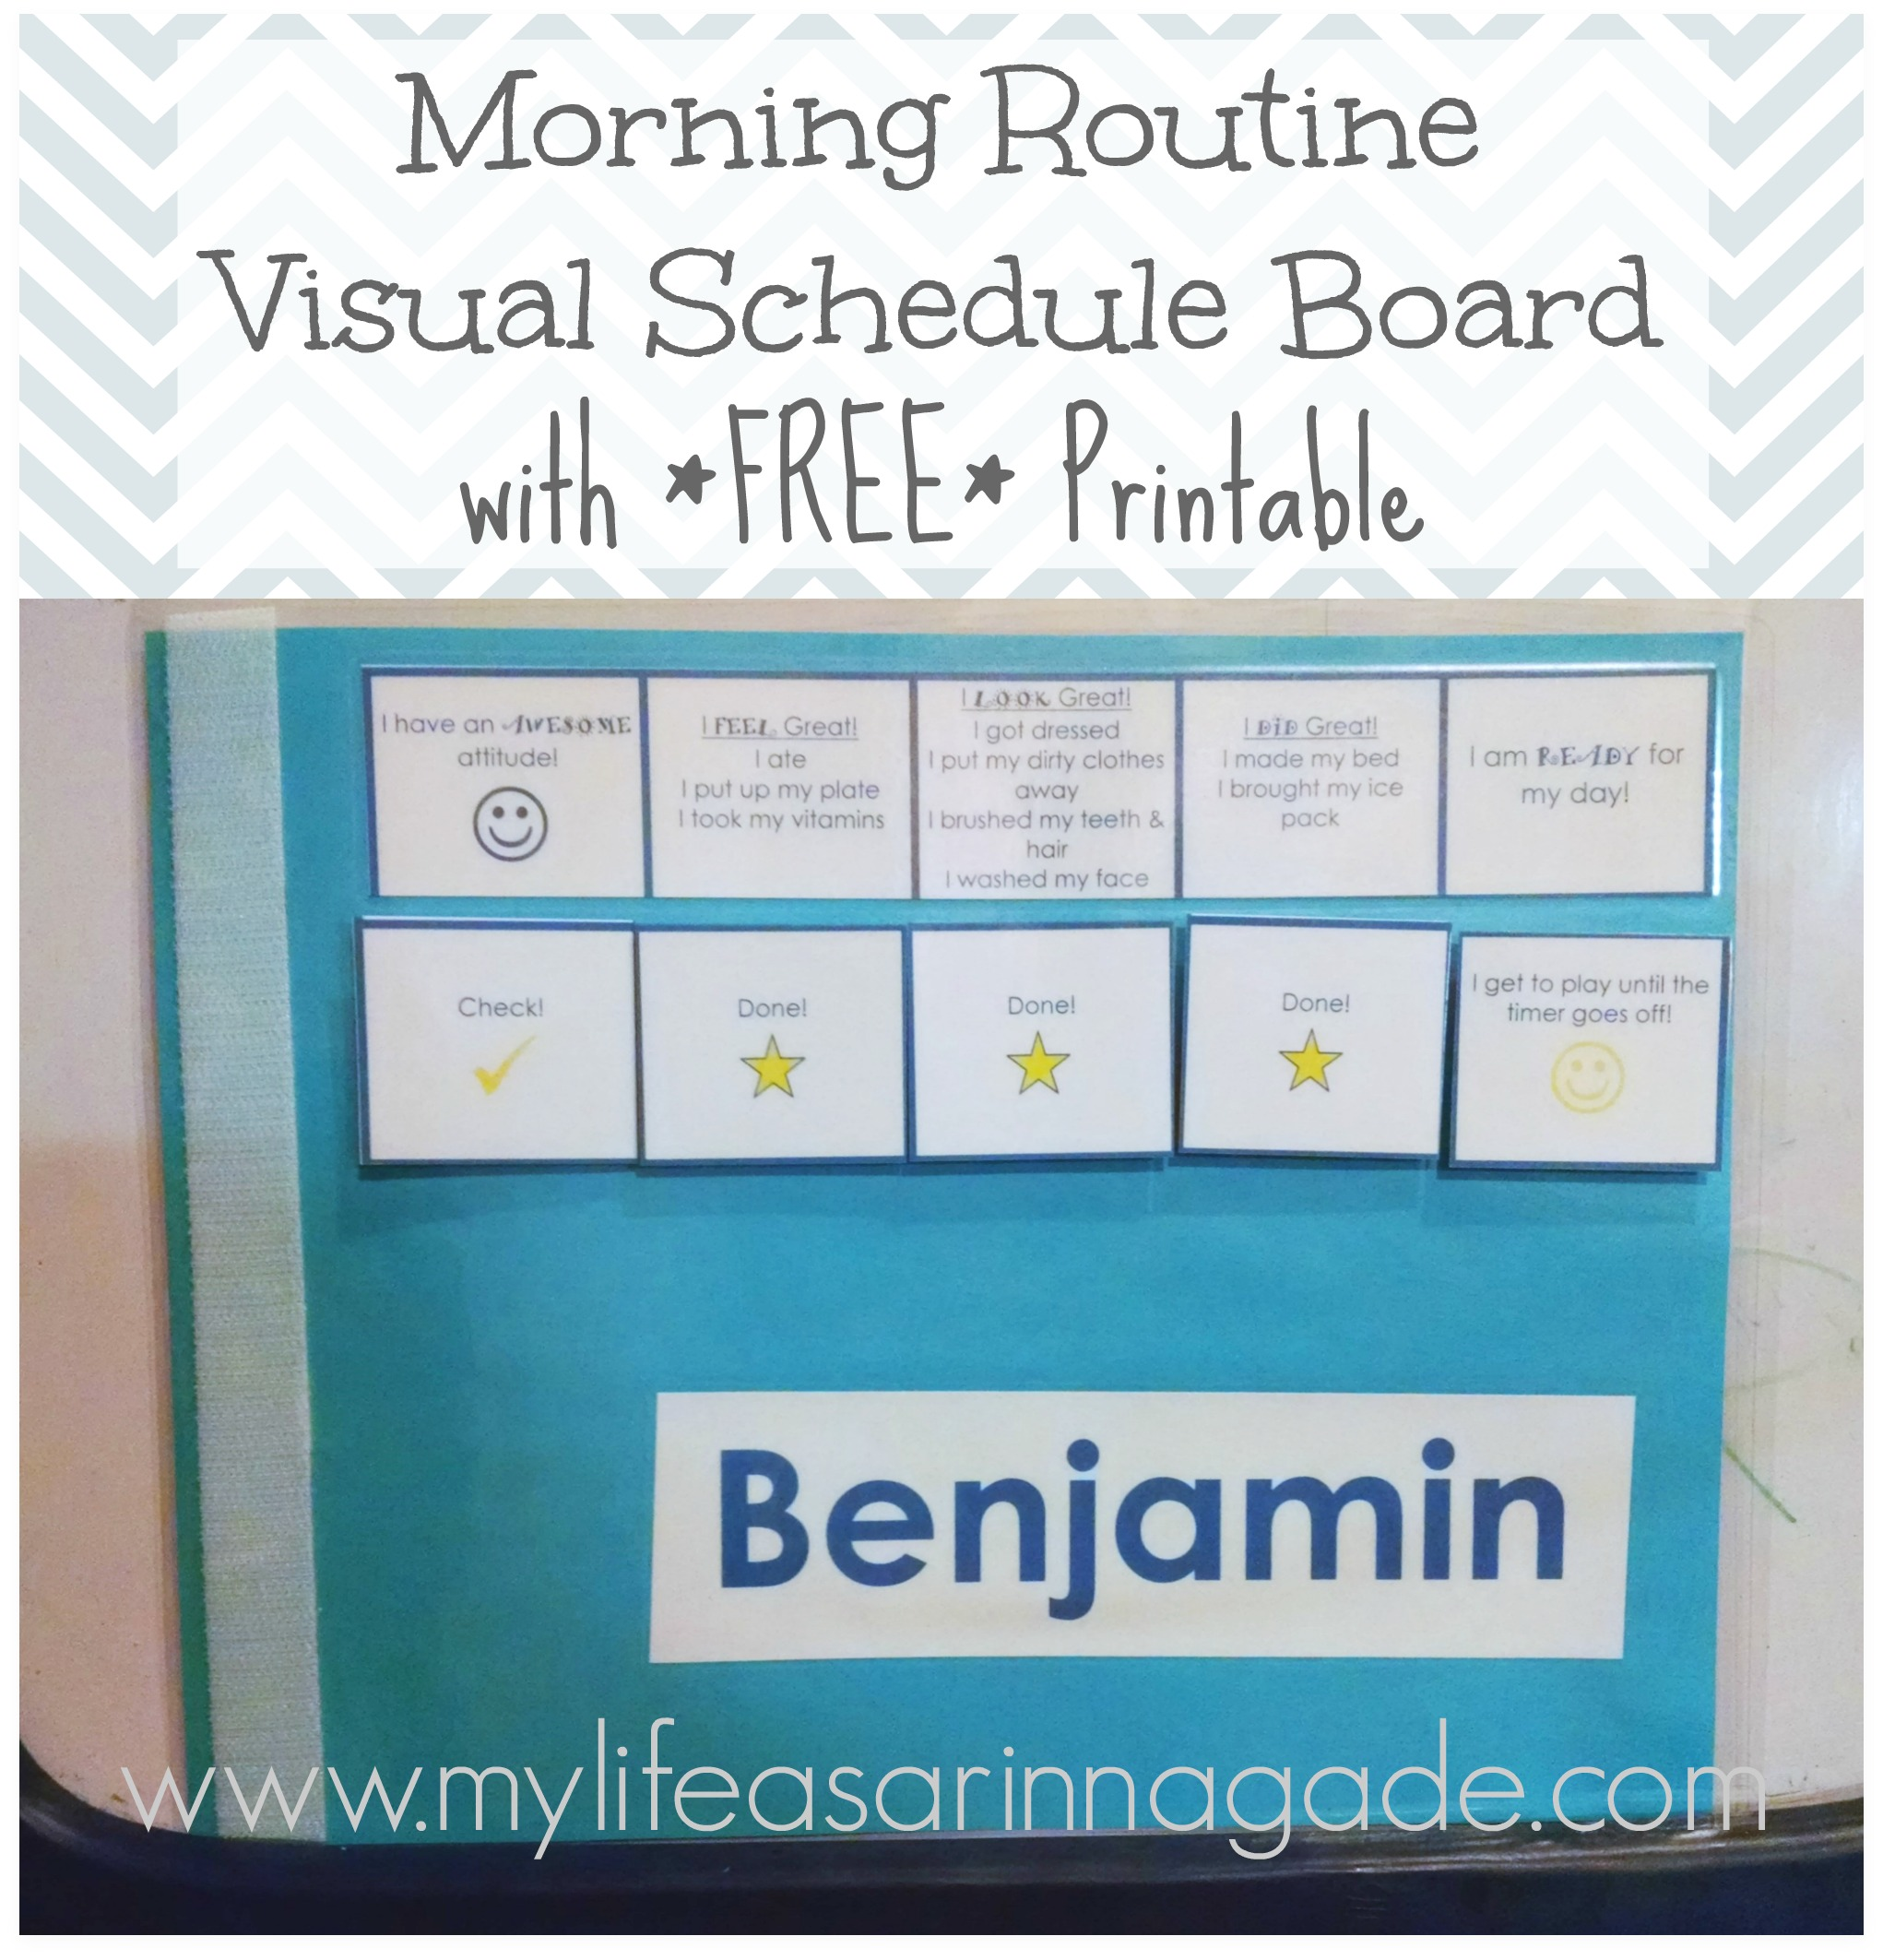 Morning Routine Visual Schedule Board With FREE Printable